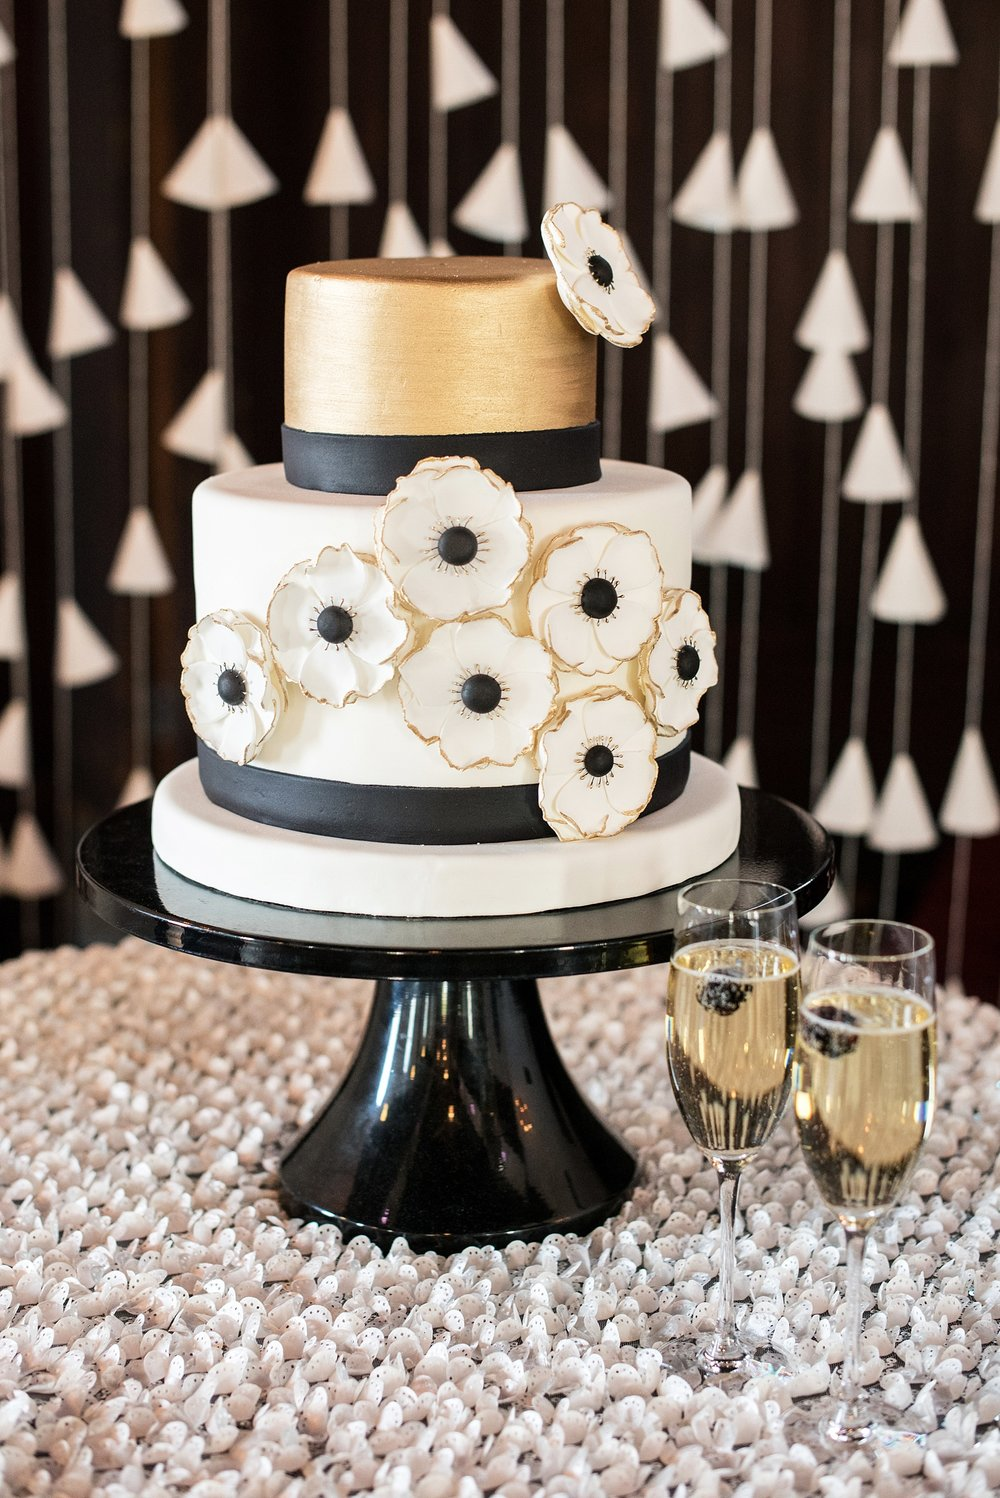 Black Gold and White Cake | Edible Art Bakery of Raleigh